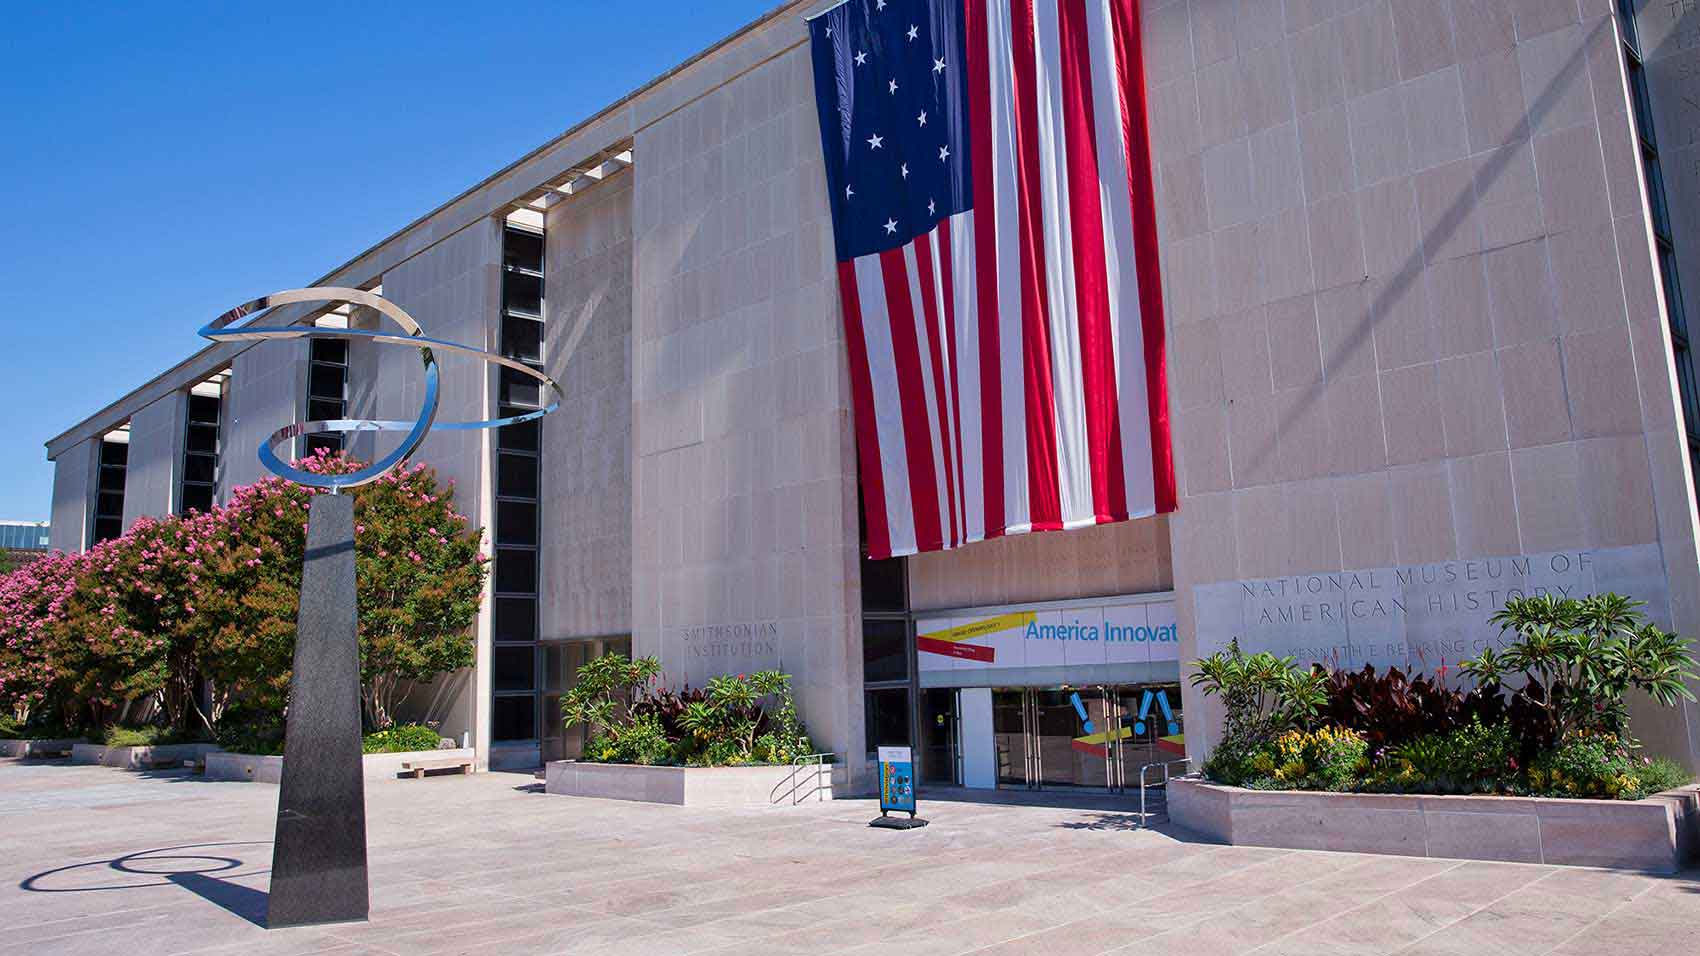 Smithsonian American History Museum in Washington D.C.